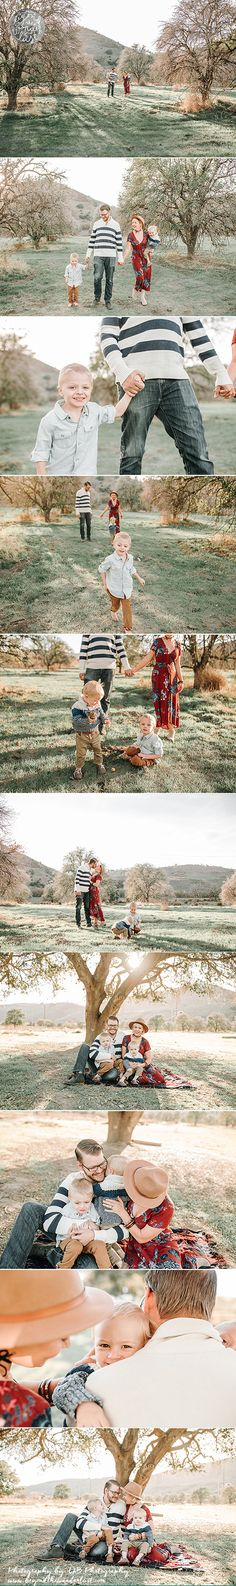 Family of 4 picture ideas >> family poses Holiday Images, Holiday Pictures, Family Pictures, Family Photo Sessions, Family Posing, Family Portraits, Family Of 4, Picture Poses, Picture Ideas